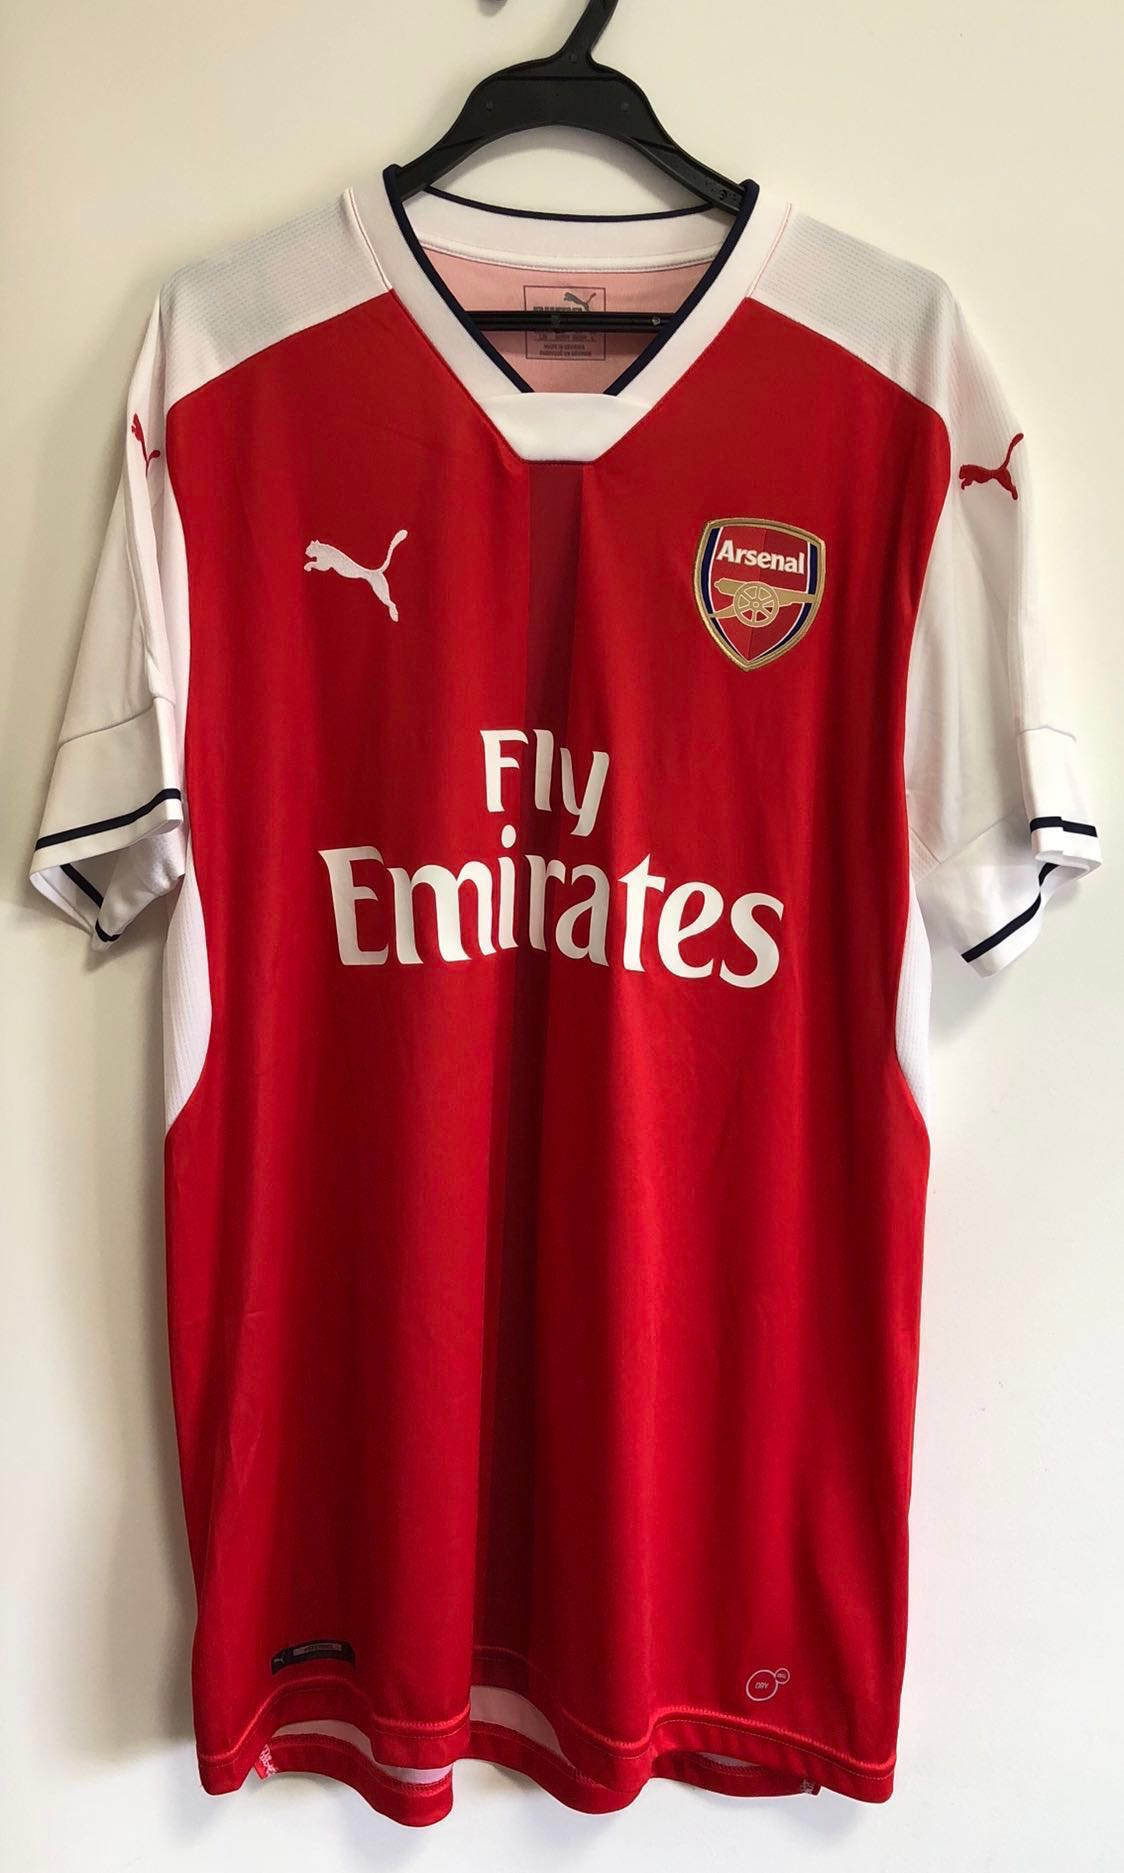 promo code 9a963 394af L size authentic 2016/17 Arsenal Home jersey top